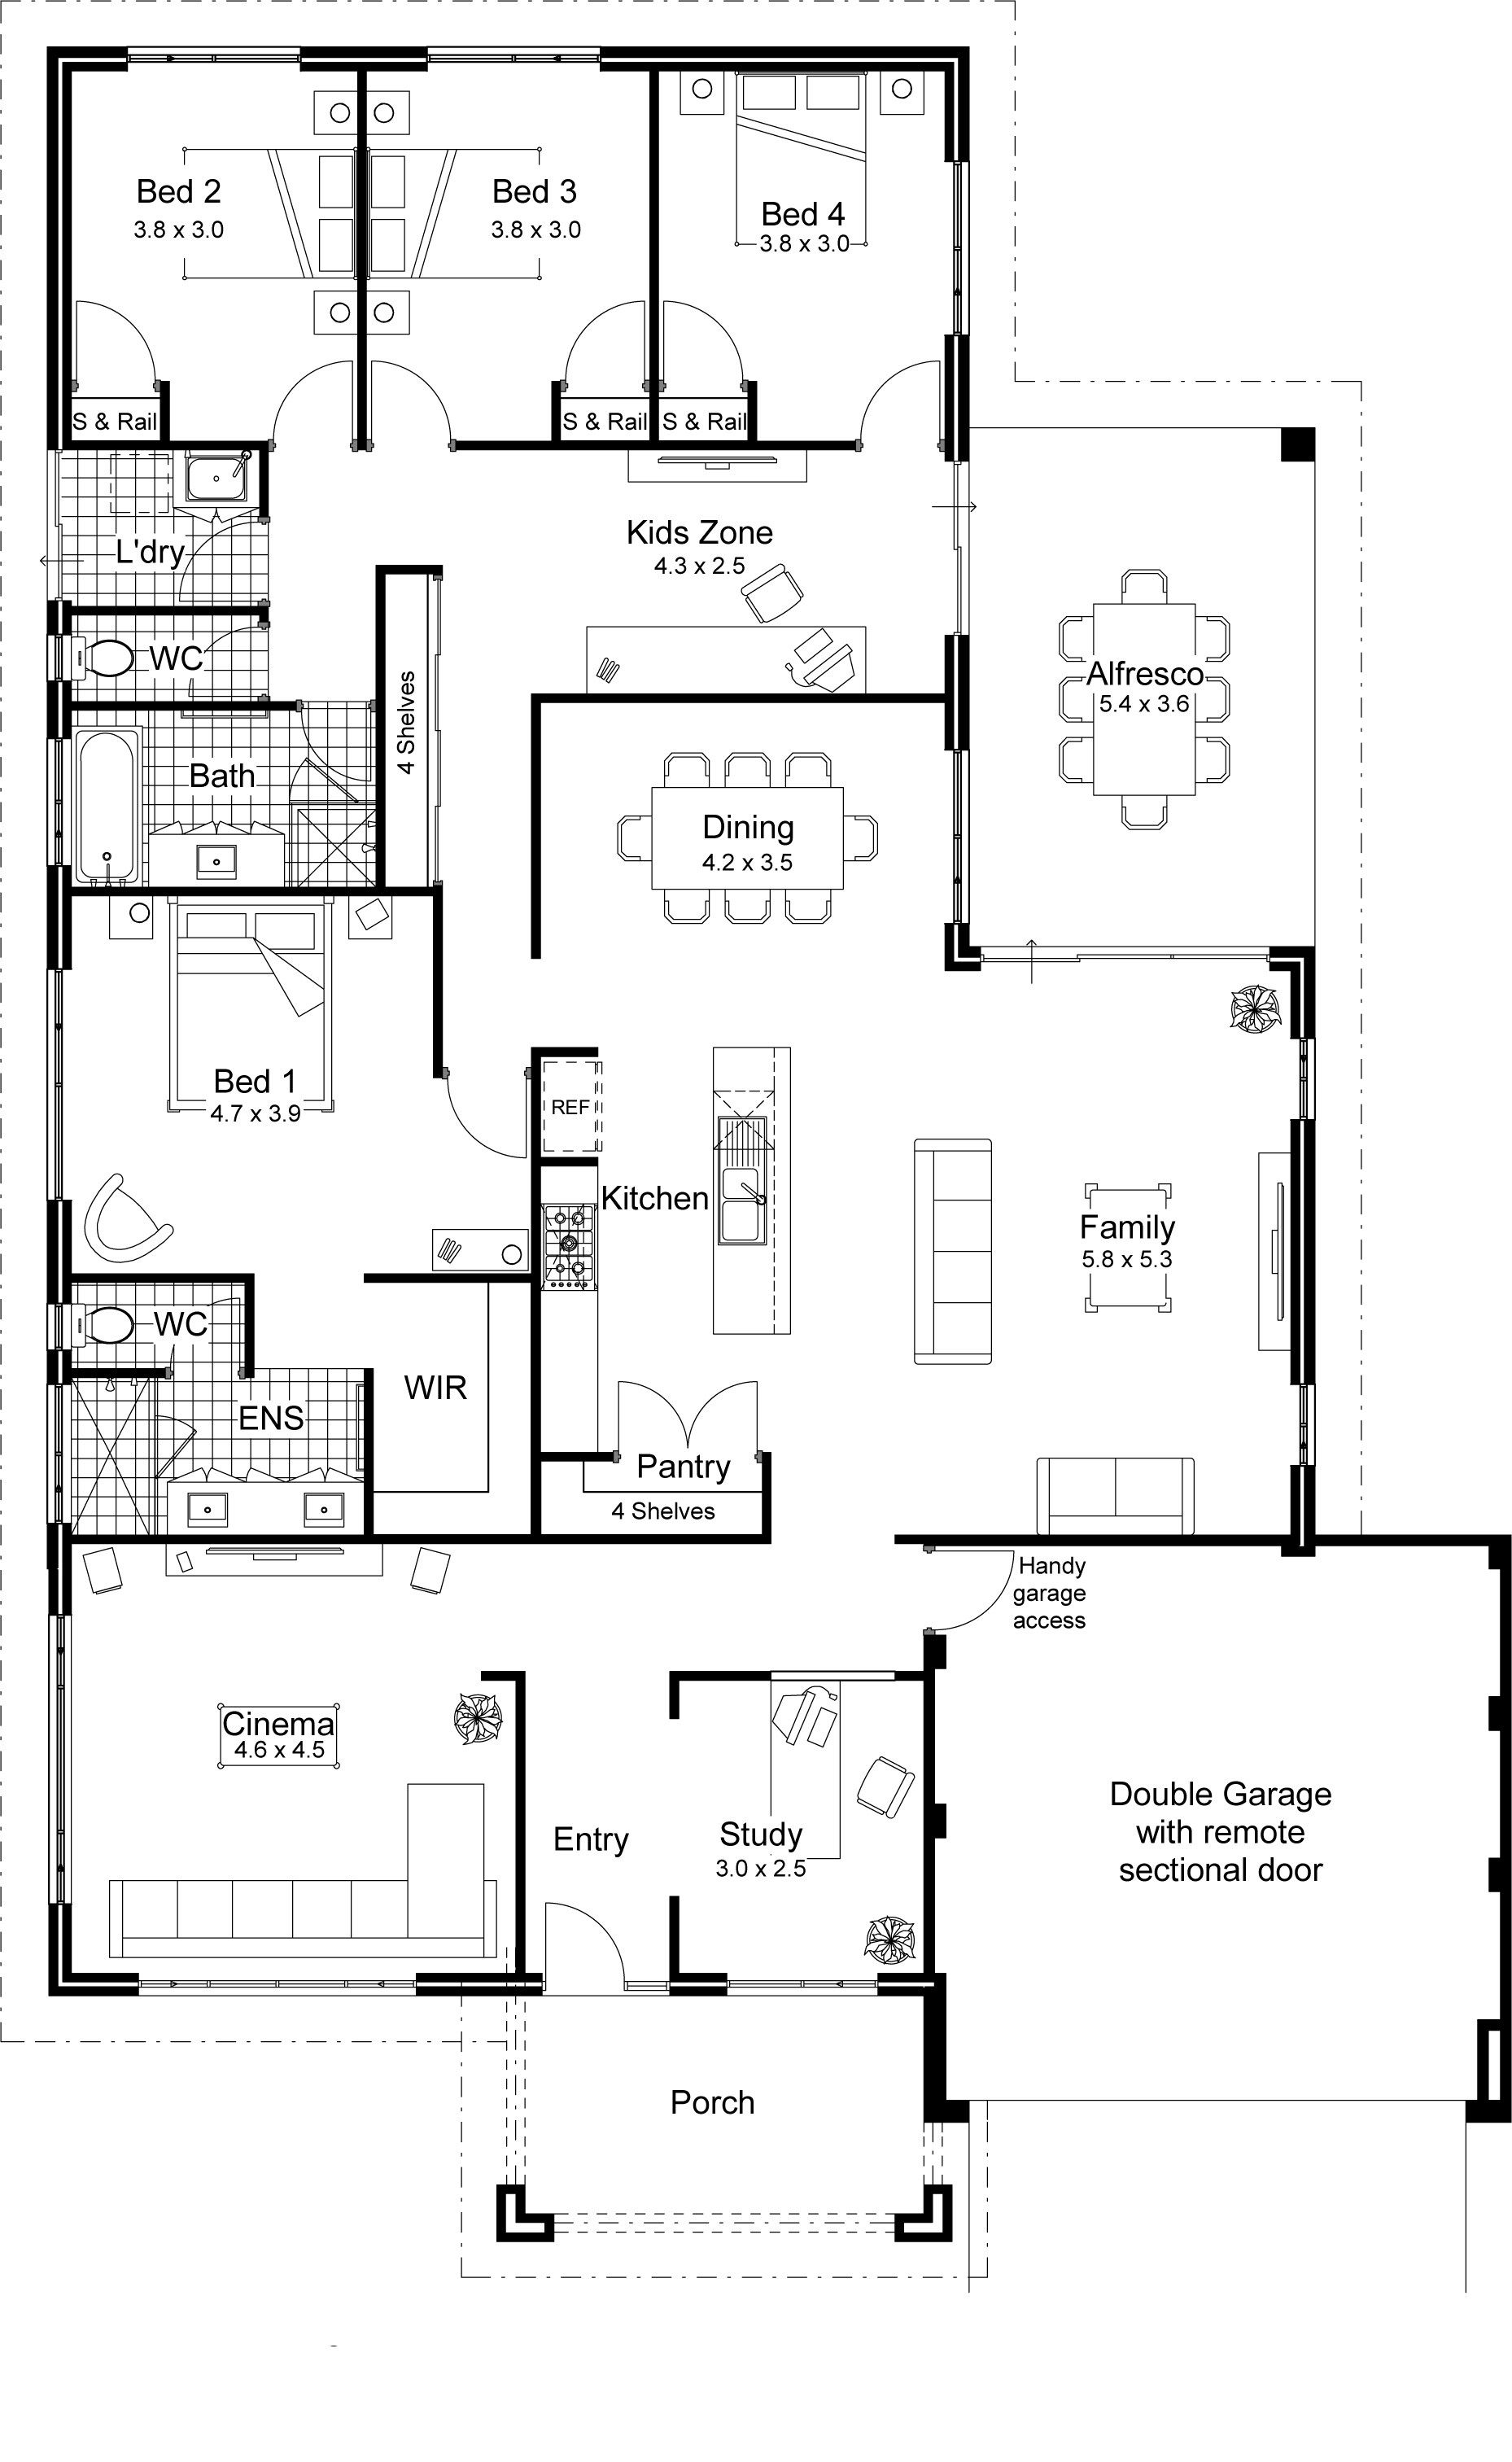 Plan Ideas Home Kits Cabin Plans Floor Plan Pool House Luxury Home Plans Gt Custom Home Design Collection Gt Heron Cus Adirondack Homes South Peak Resort At L Modern House